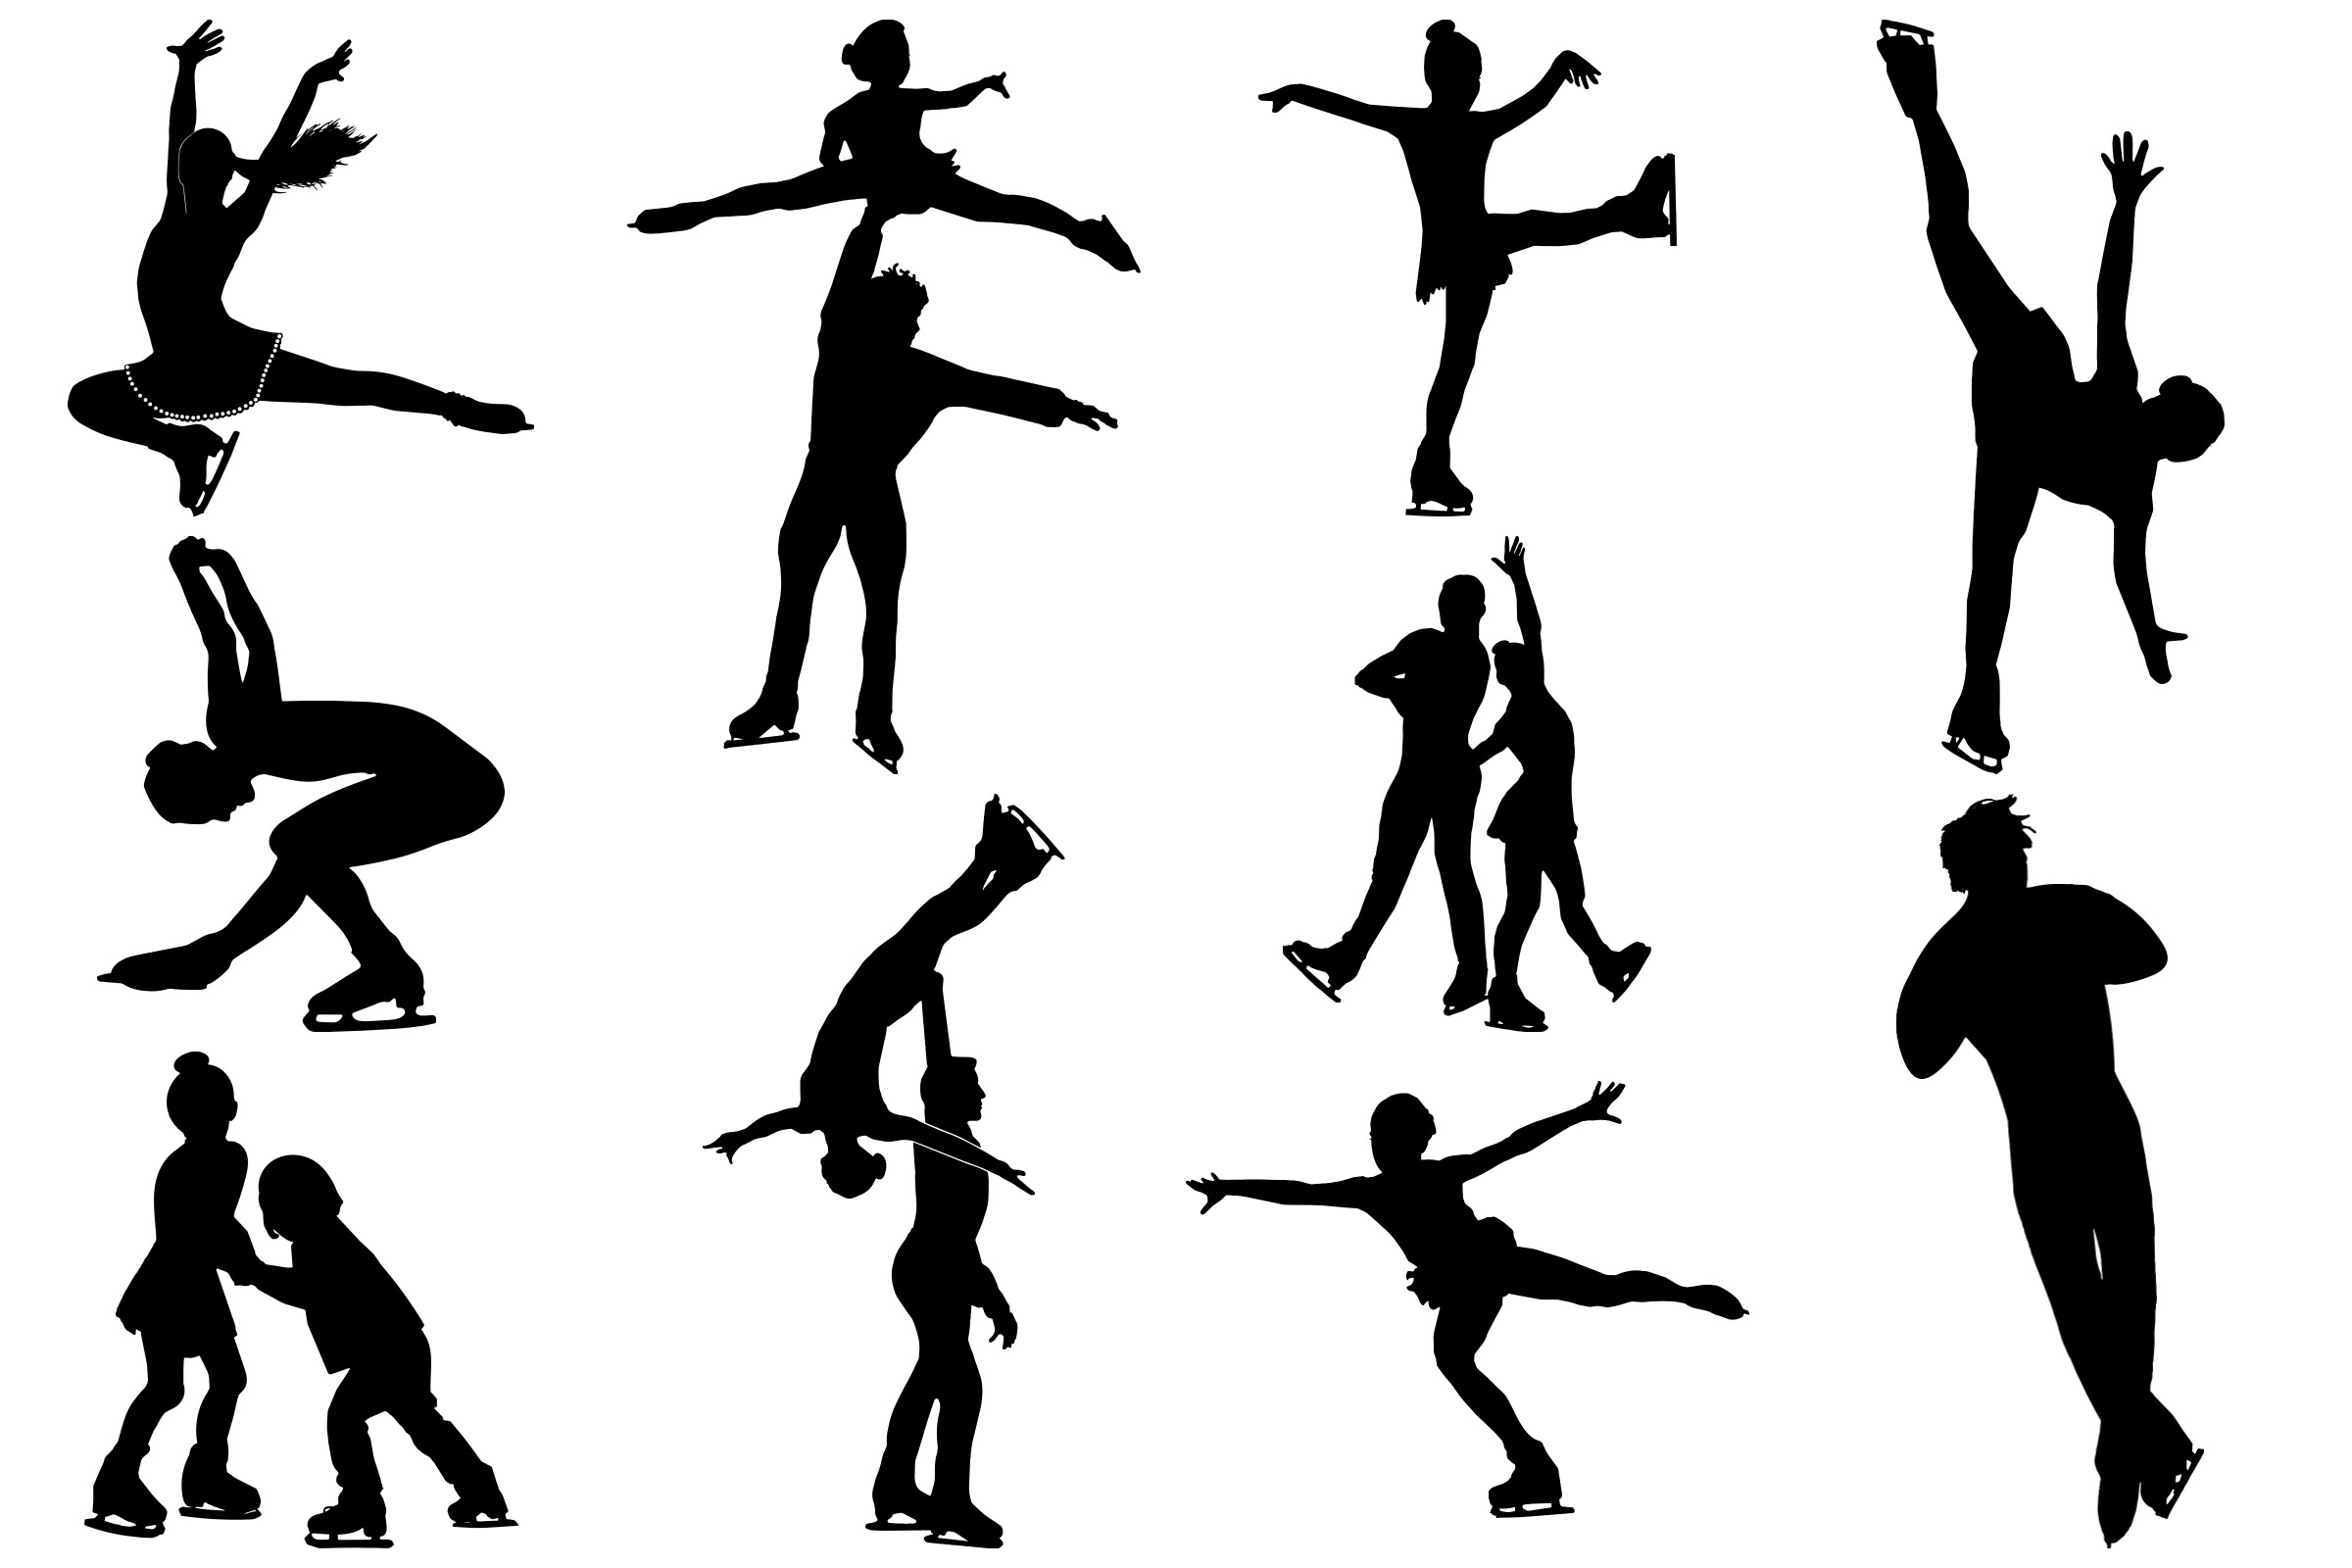 figure skater silhouette figure skaters silhouette at getdrawings free download silhouette figure skater